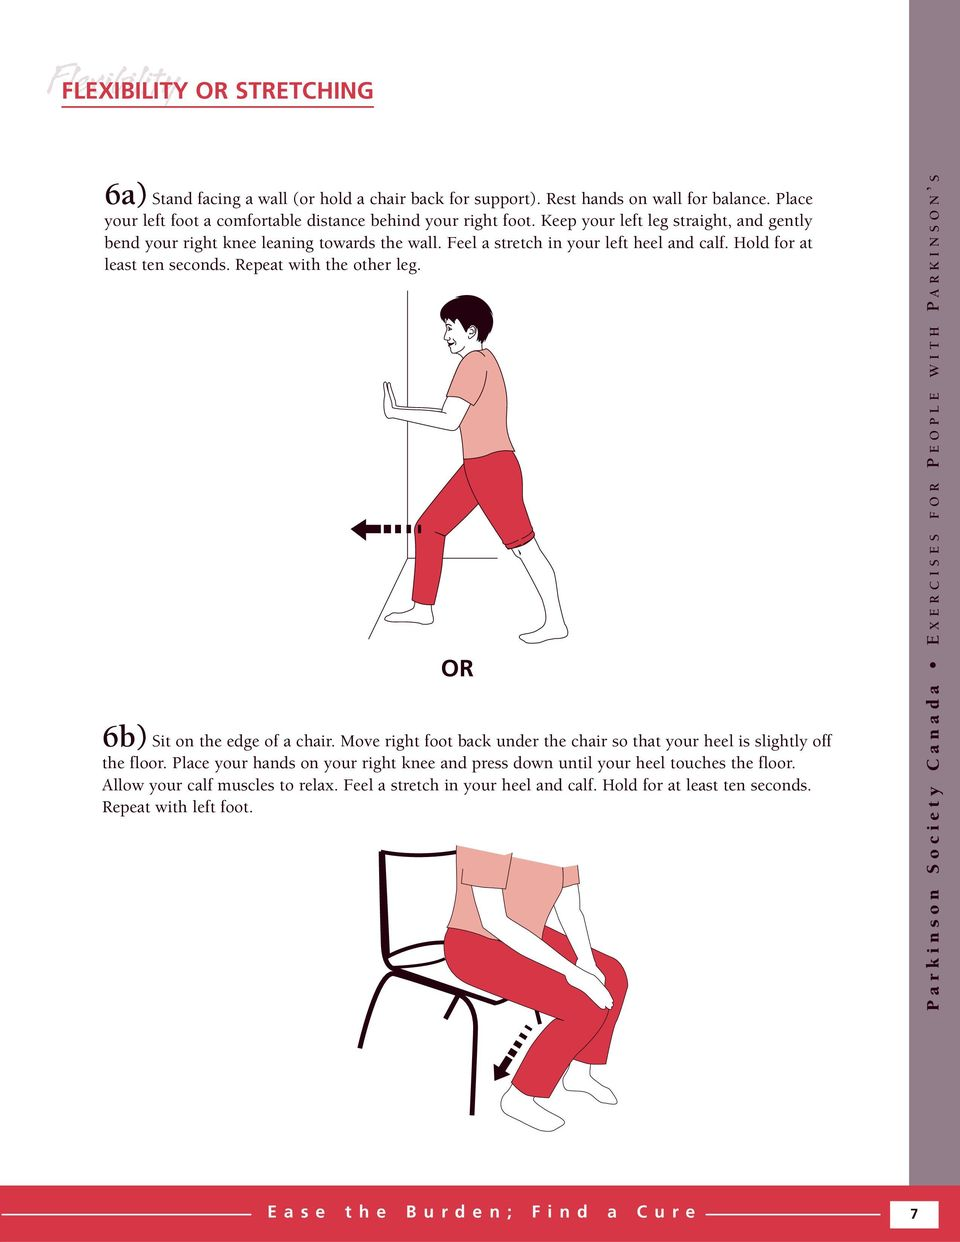 Feel a stretch in your left heel and calf. Hold for at least ten seconds. Repeat with the other leg. OR 6b) Sit on the edge of a chair.